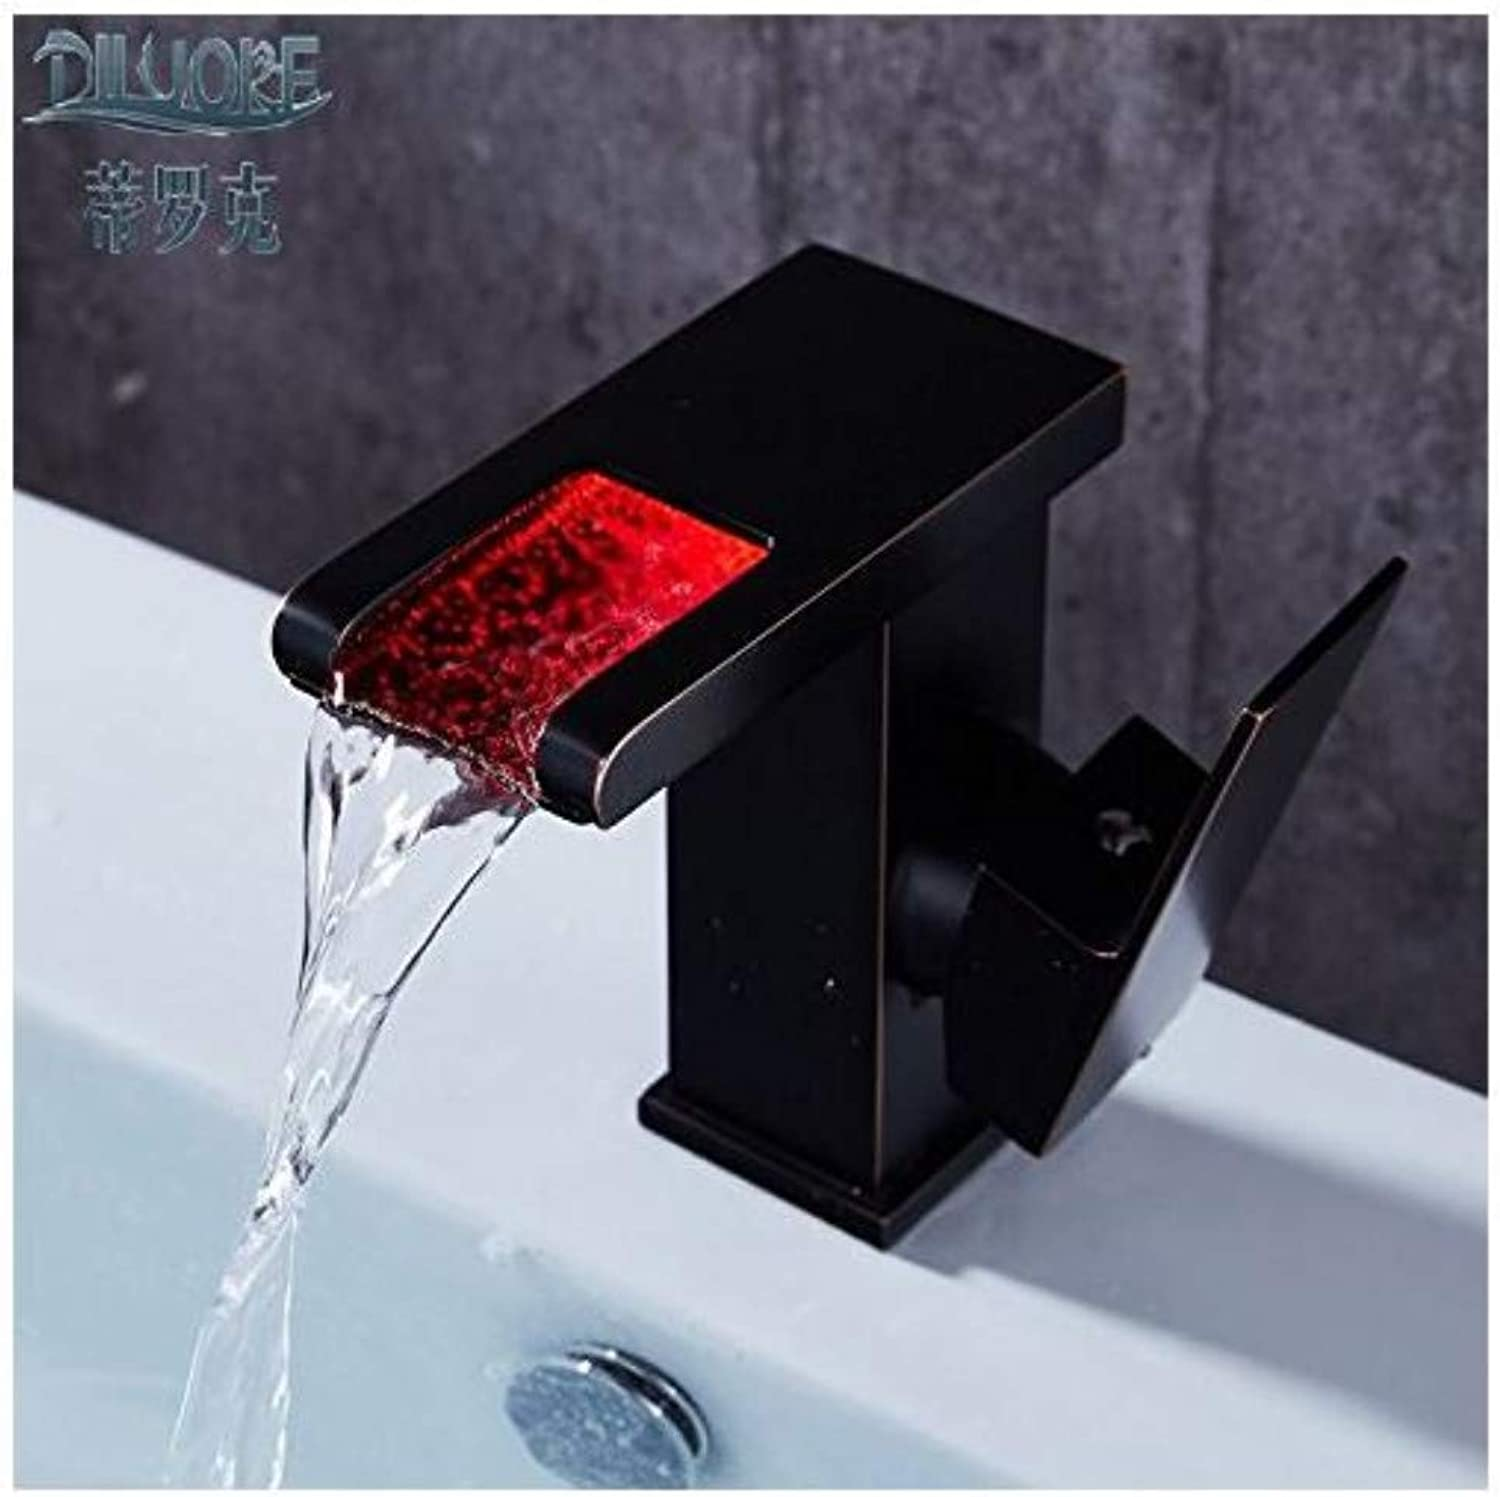 Modern Double Basin Sink Hot and Cold Water Faucetfaucet Hot and Cold Wash Basin Bathroom, Luminous Faucet